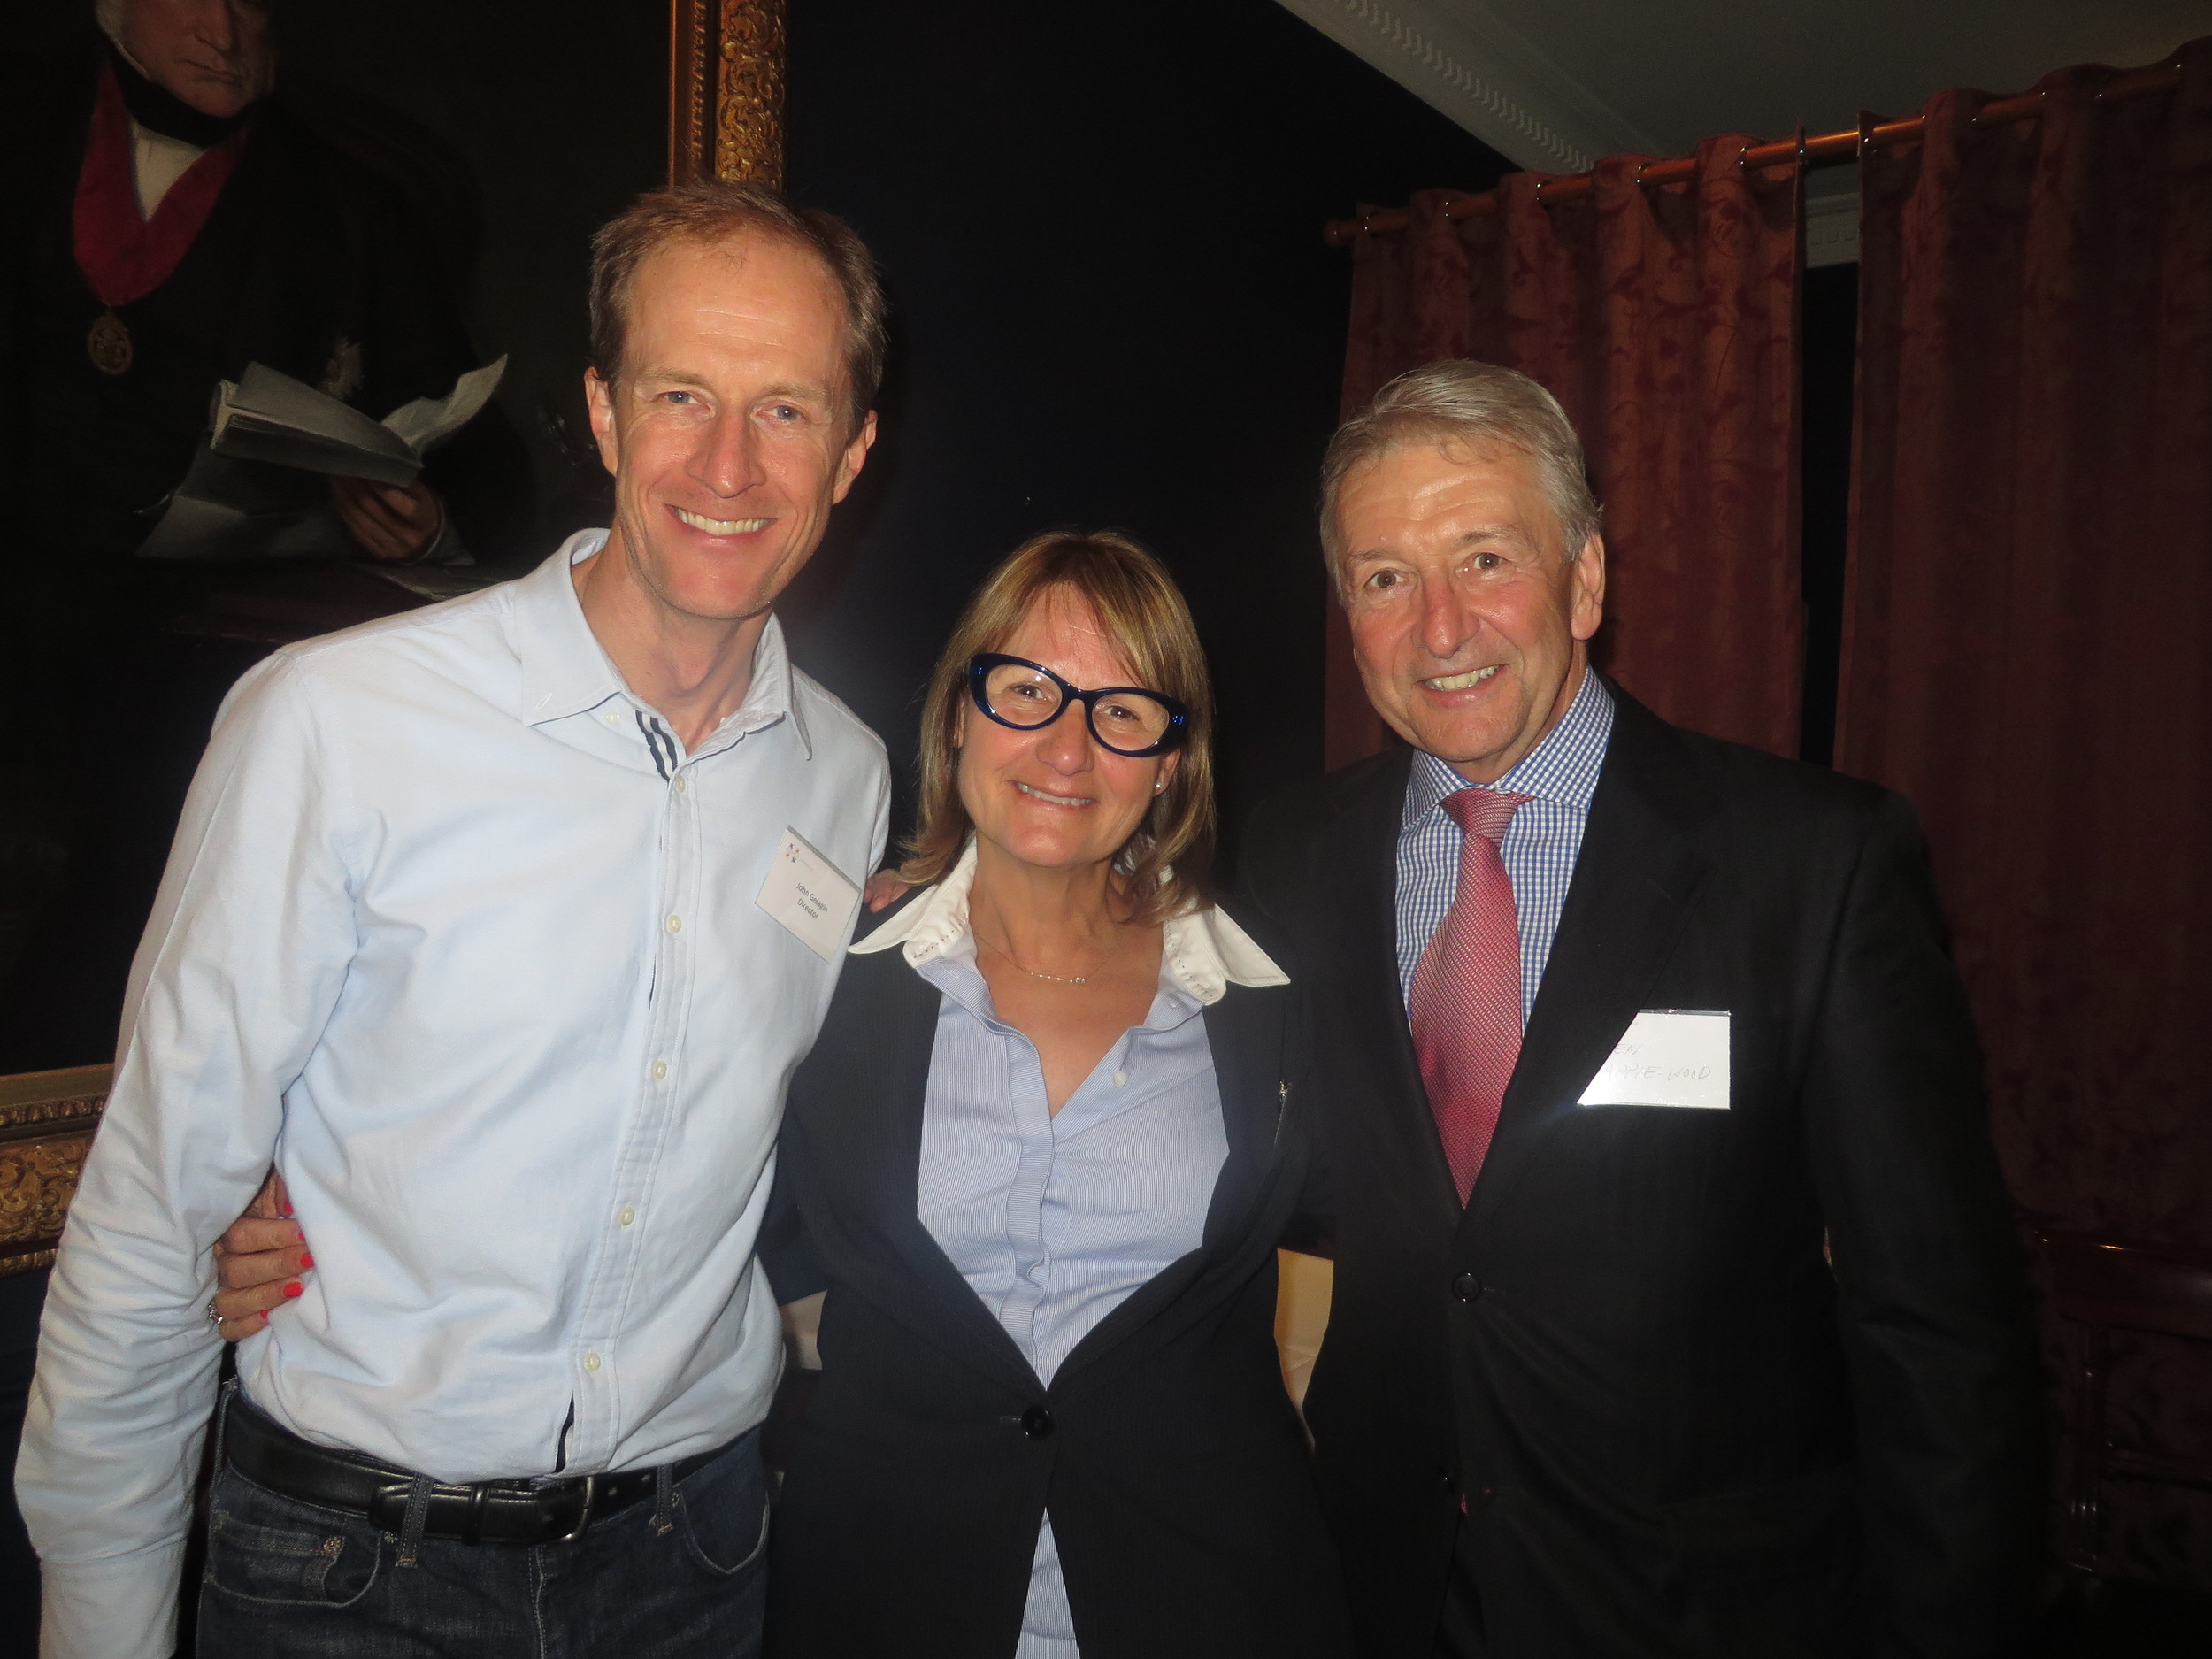 Make a Difference CEO John Gelagin with Directors Nadia Taylor and Ken Cappie-Wood